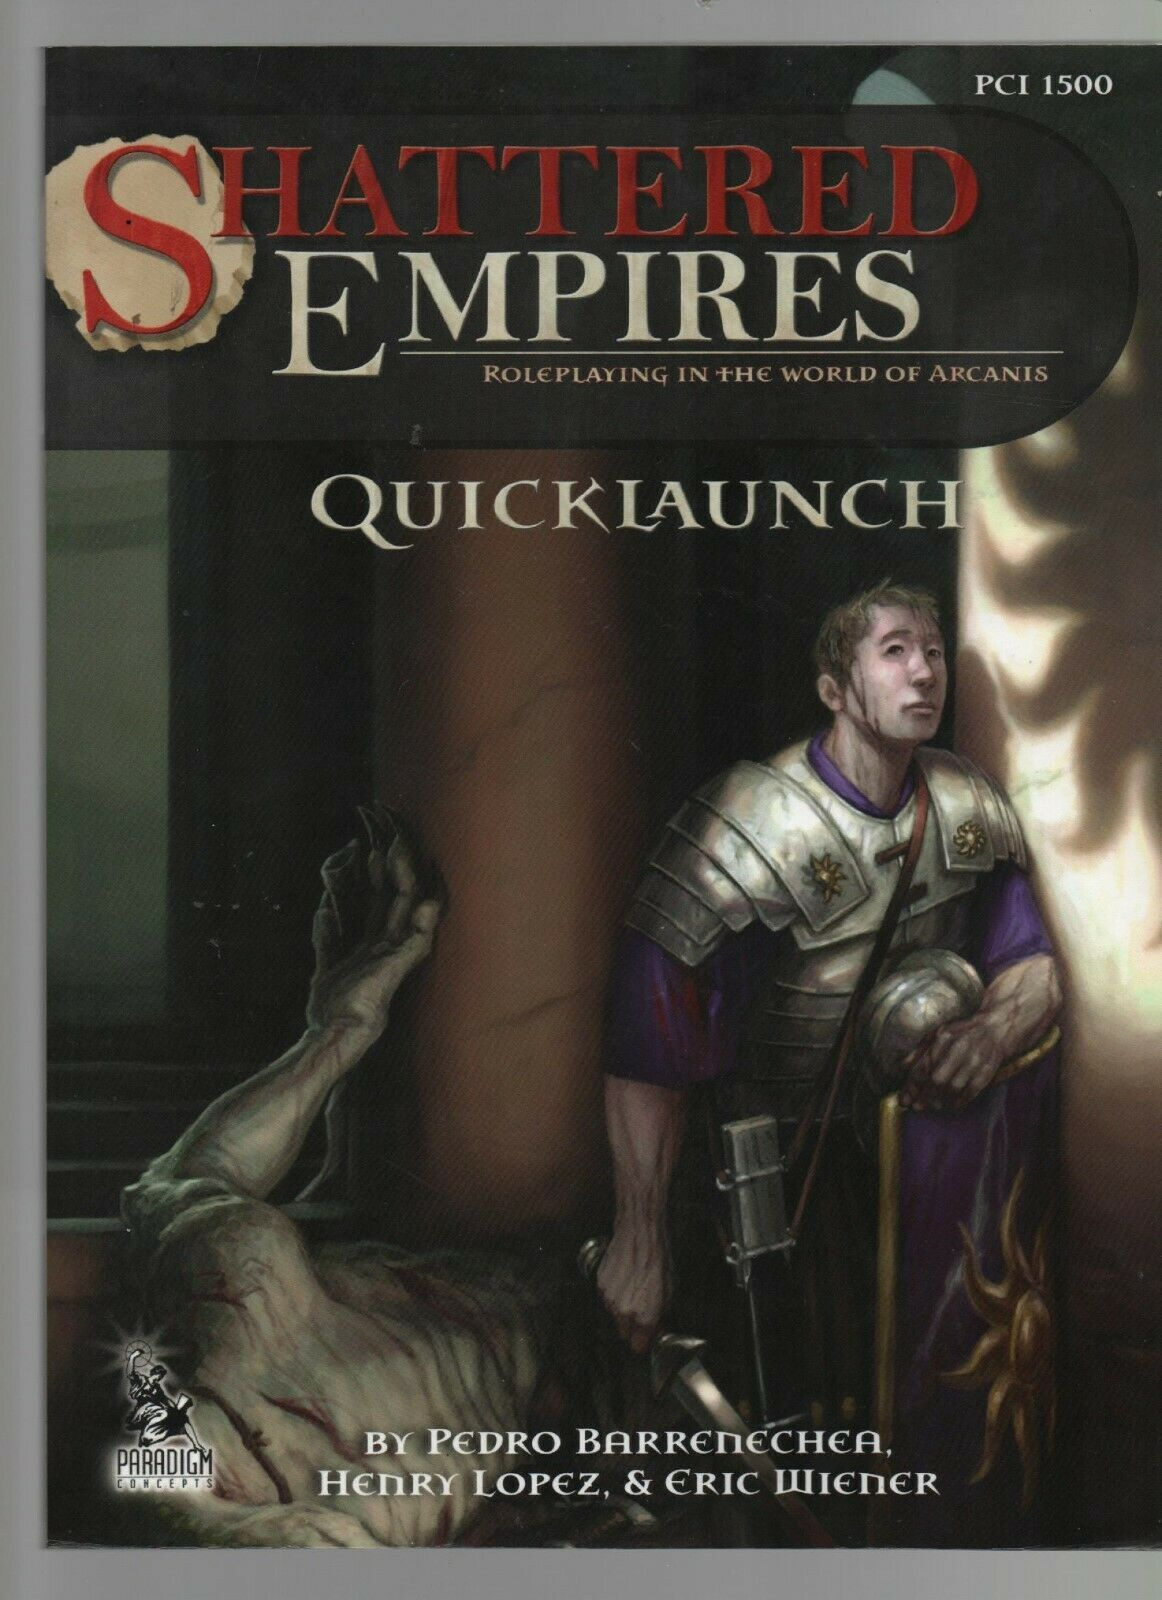 Primary image for Shattered Empires - Quicklaunch - SC - 2010 - Andrew Baker - Paradigm Concepts.